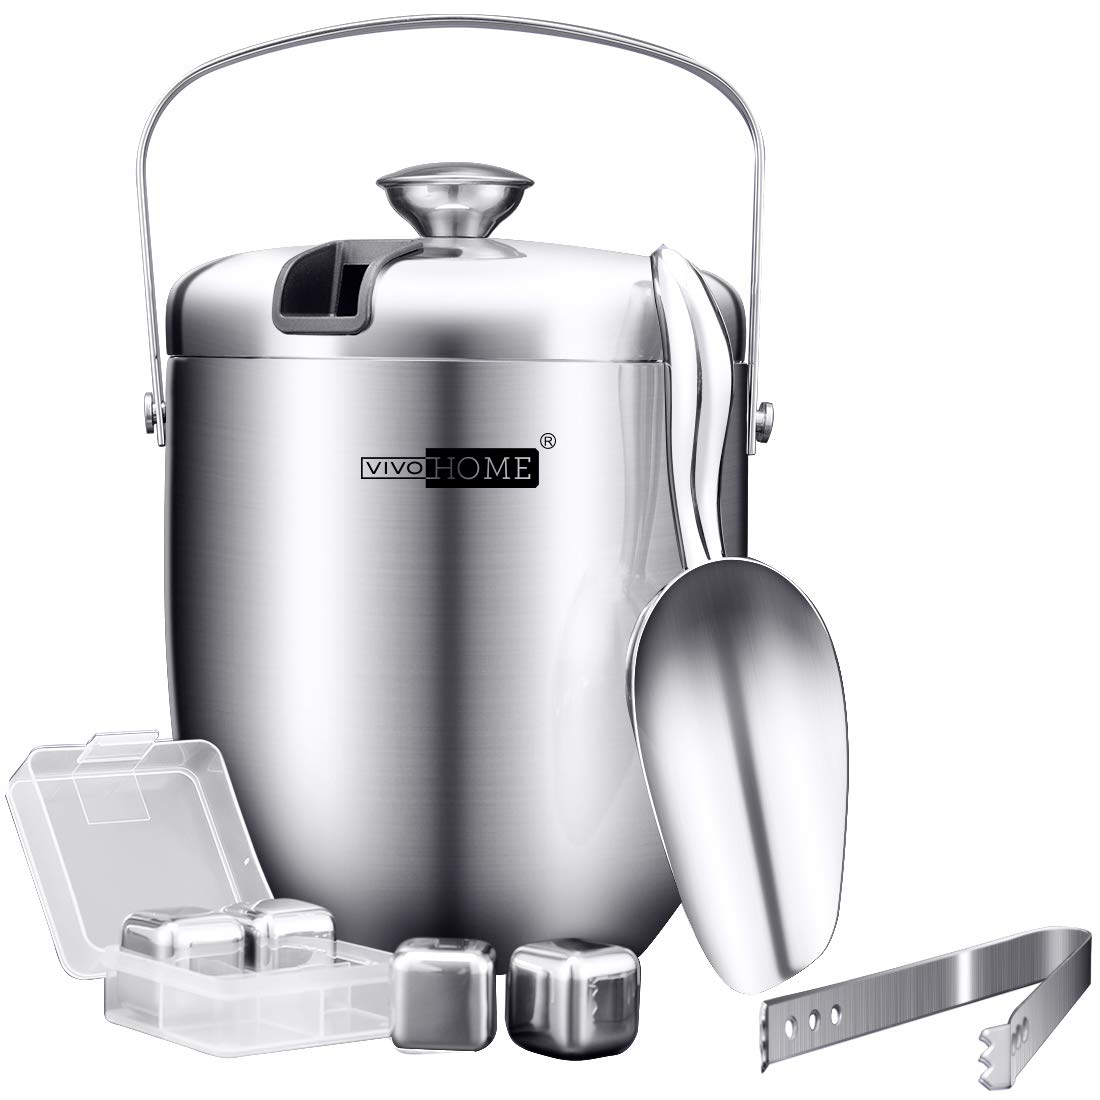 VIVOHOME 3Quart Stainless Steel Double Wall Insulated Ice Bucket Set with Lid Tongs Scoop and 4 Reusable Stainless Steel Ice Cubes Silver by VIVOHOME